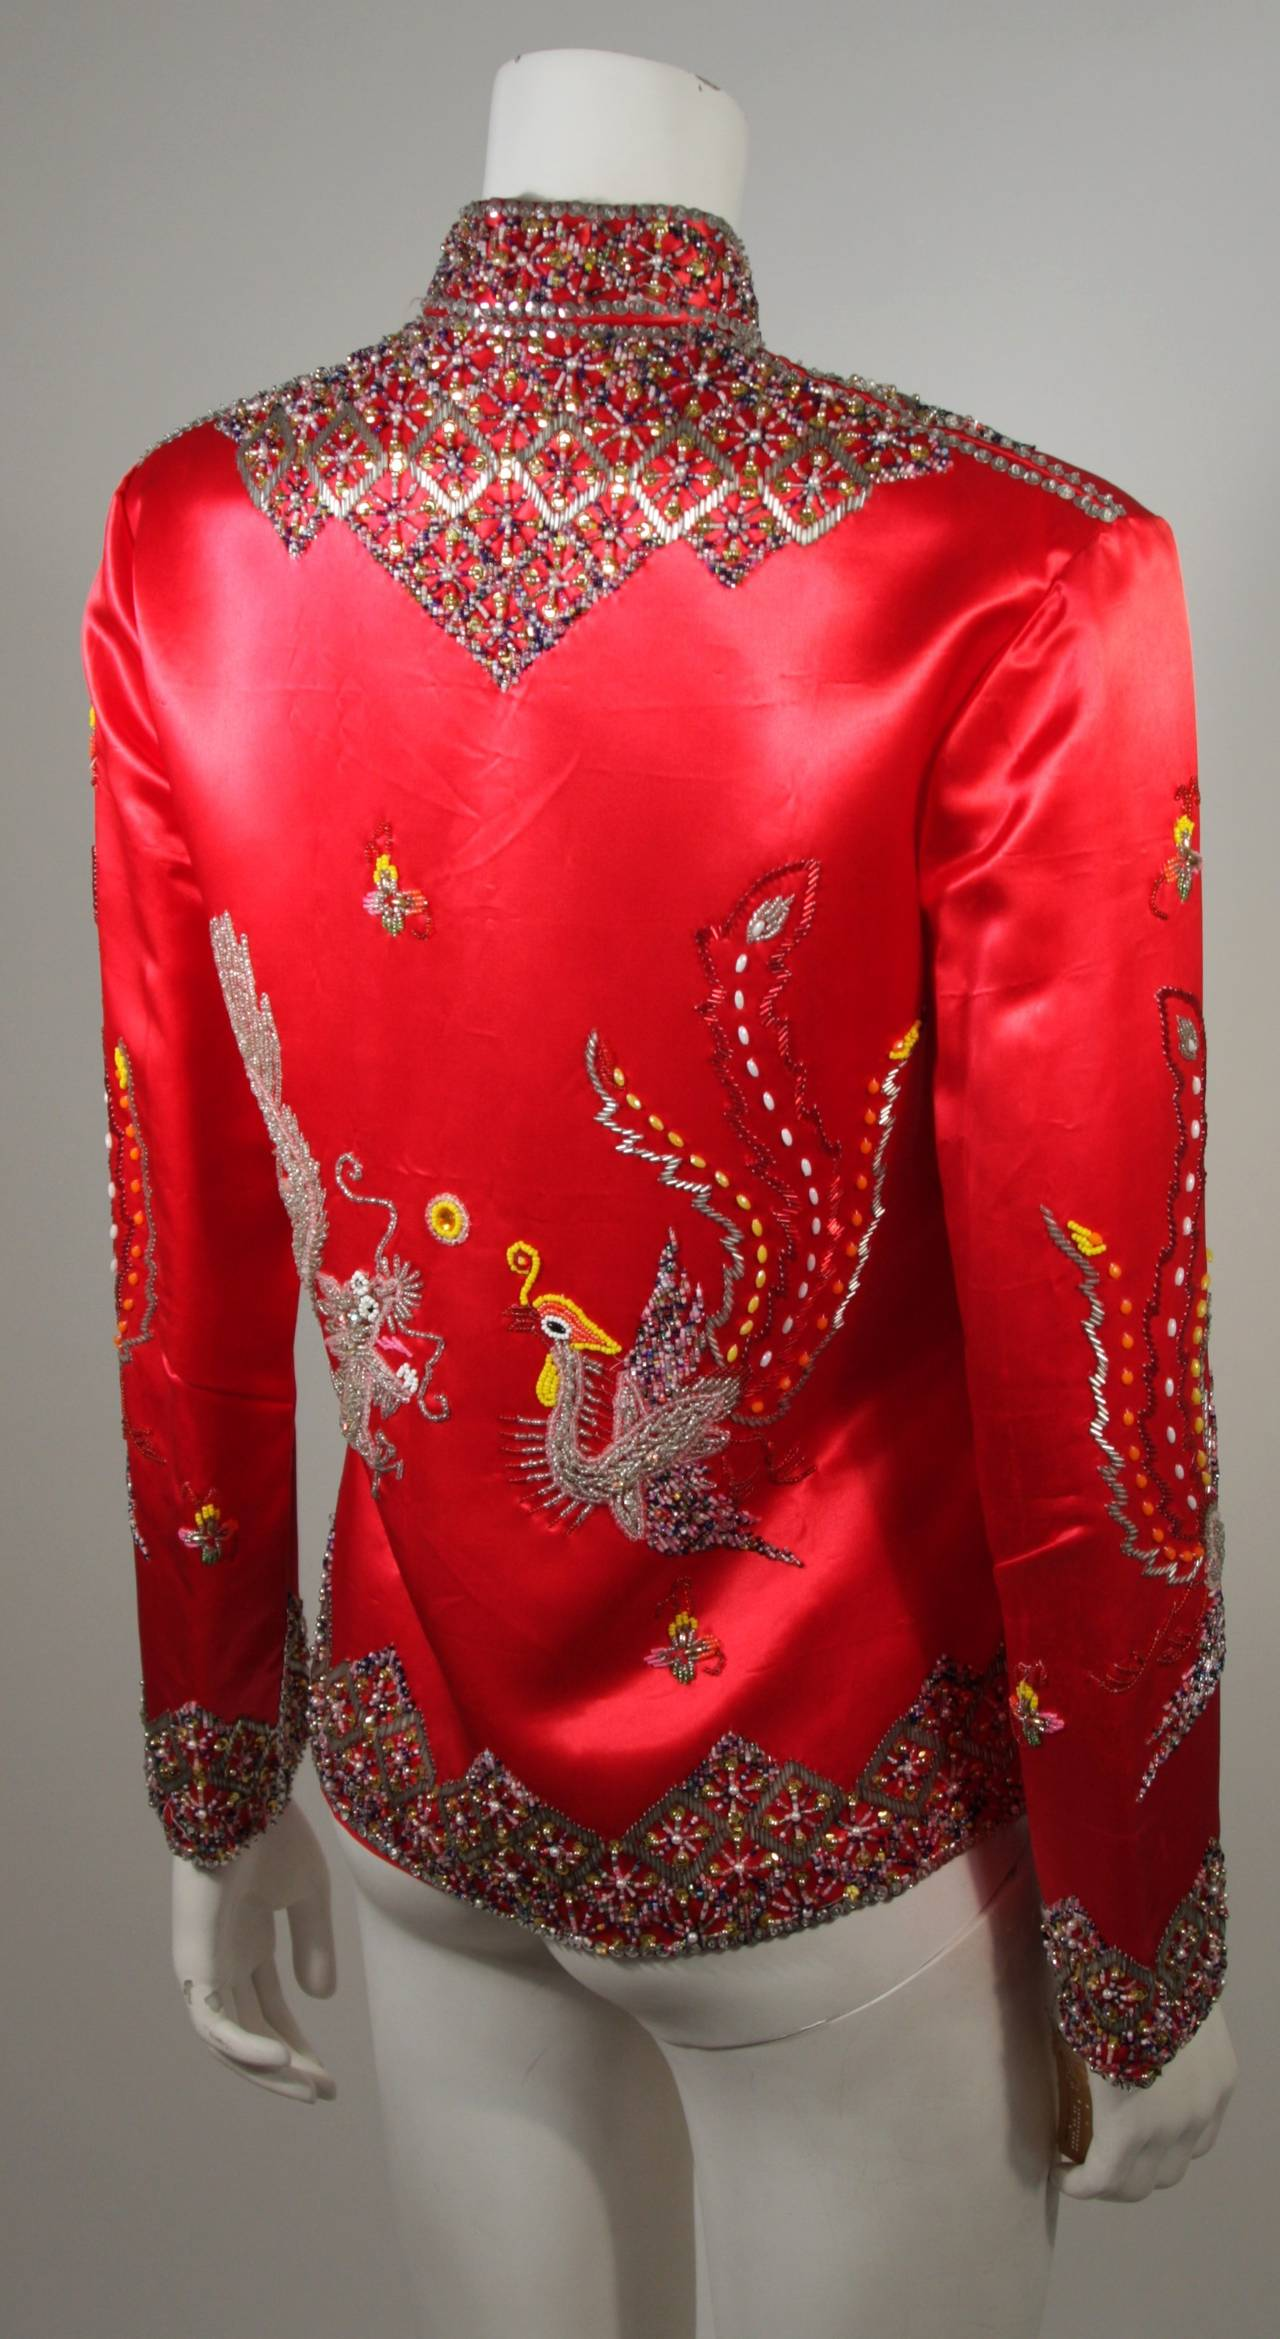 Dynasty For Neiman Marcus Red Silk Hand Beaded Sequined Dragon & Phoenix Jacket For Sale 2